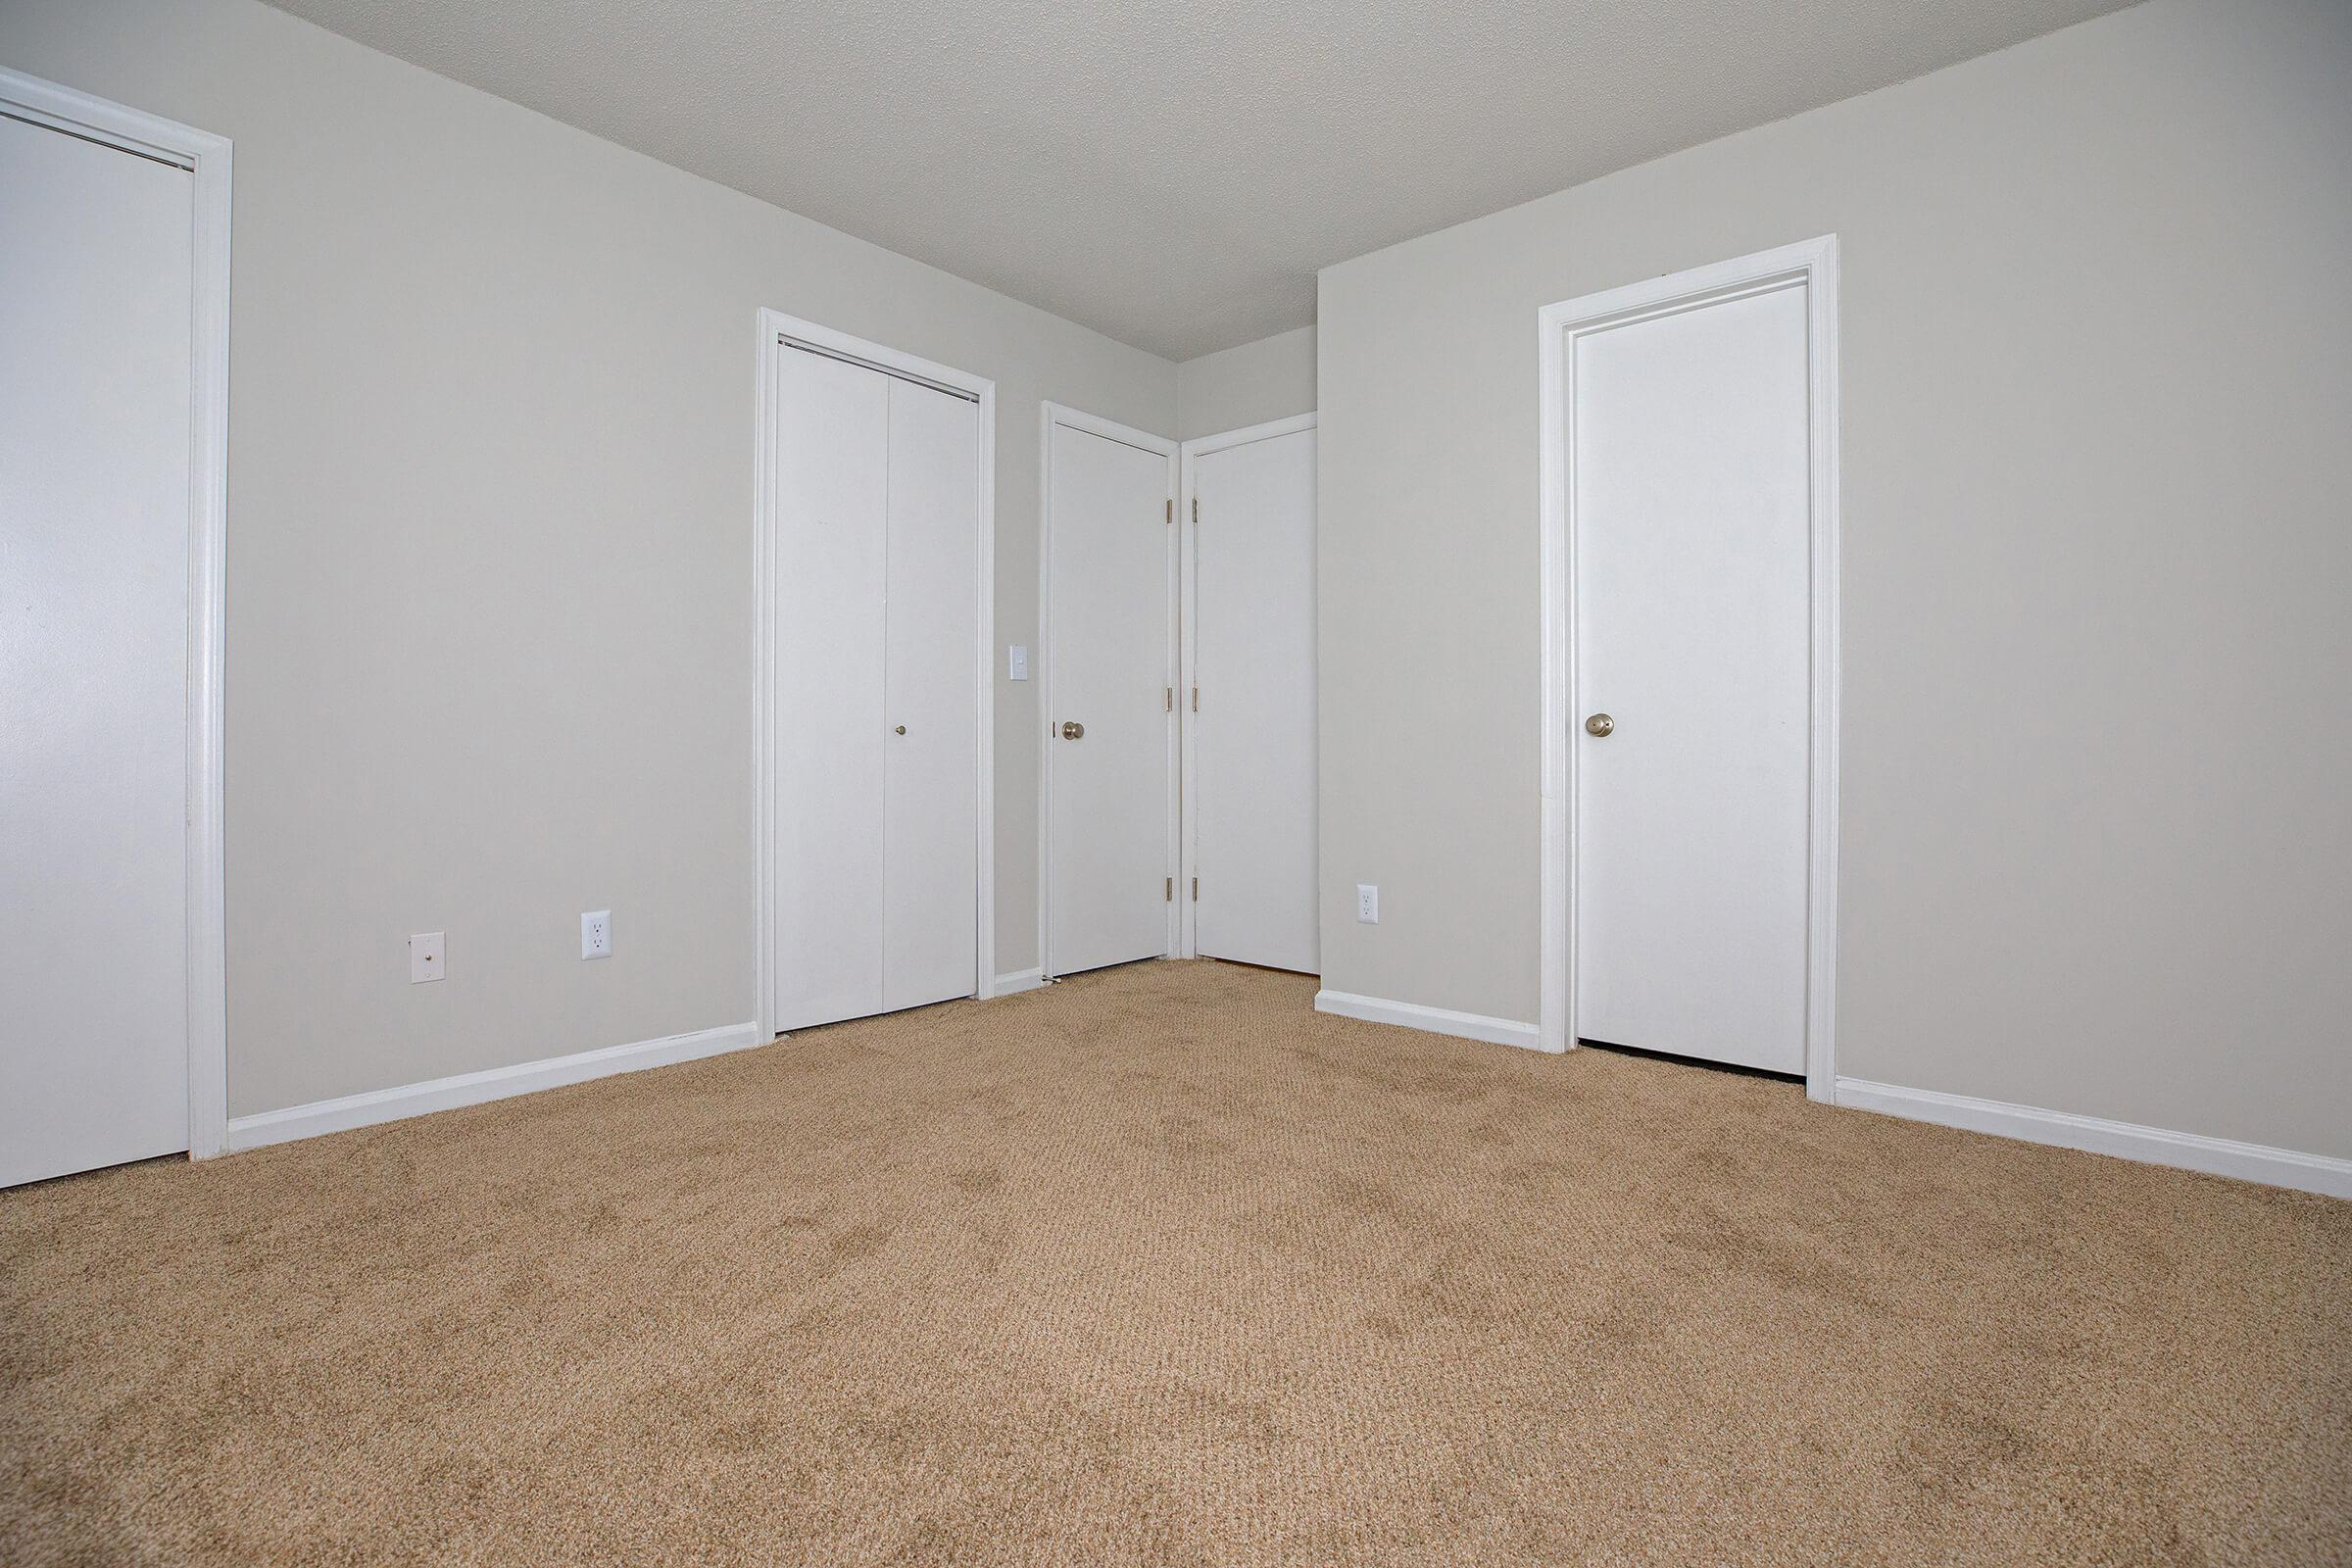 a close up of an empty room